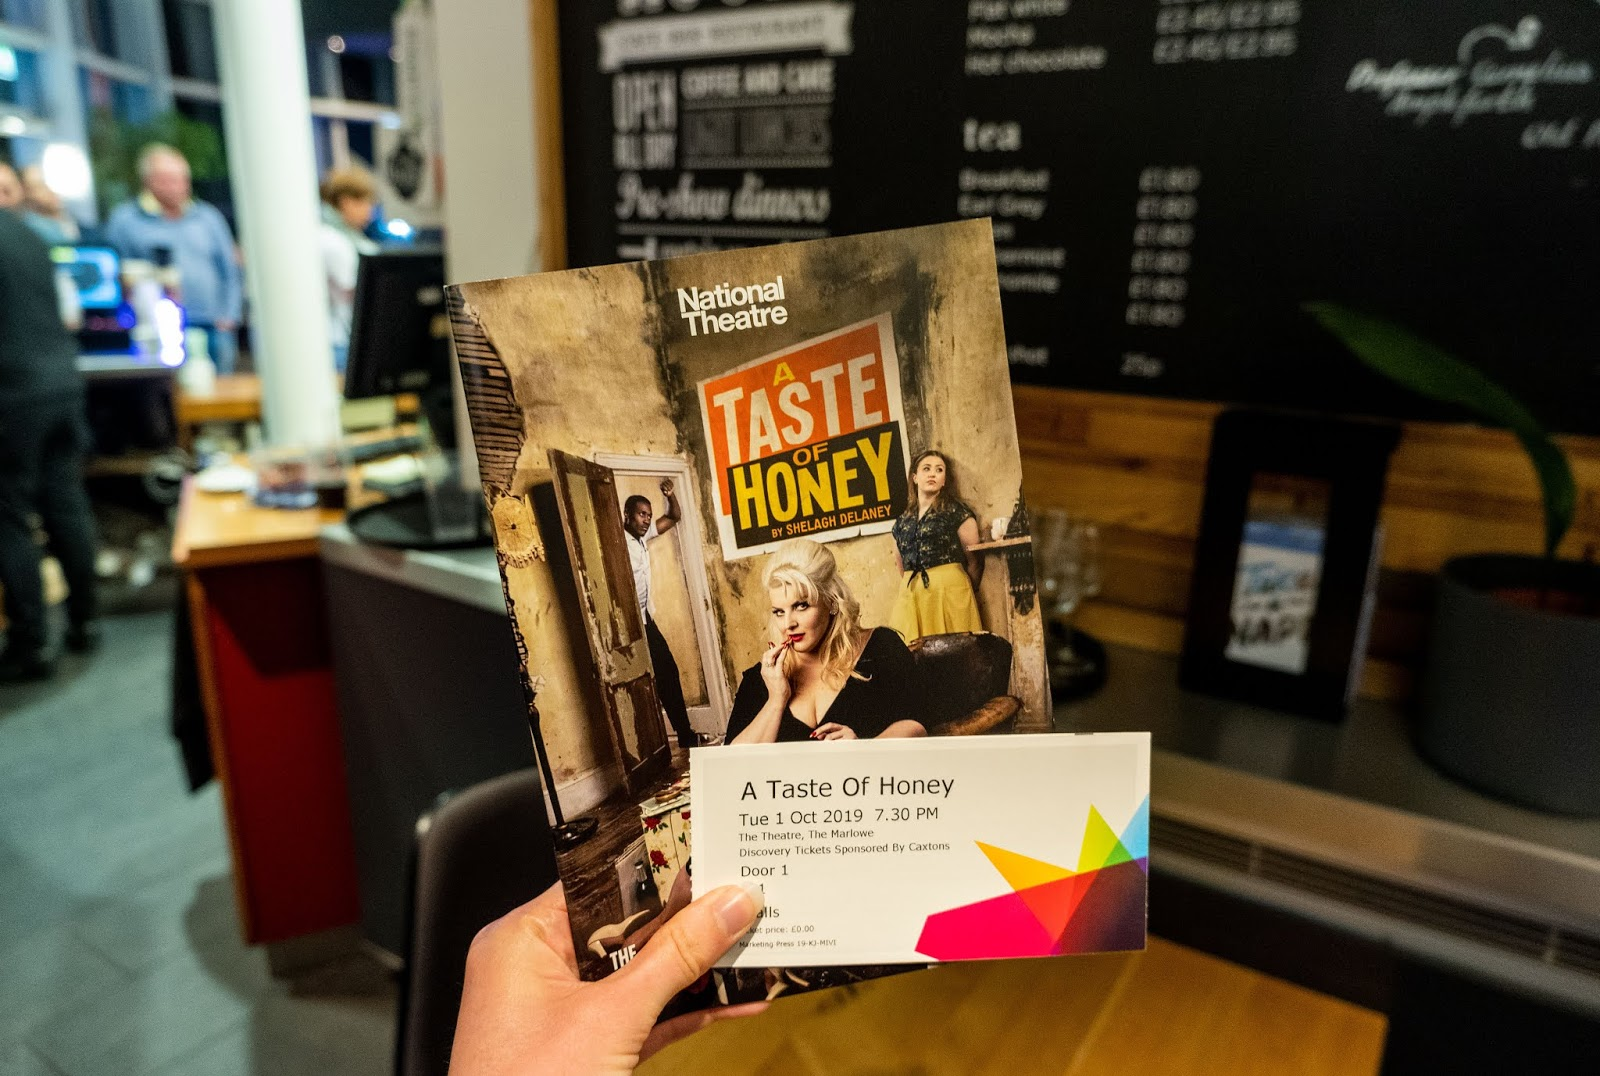 My programme and ticket for the National Theatre's A Taste Of Honey at The Marlowe Theatre in Canterbury, Kent